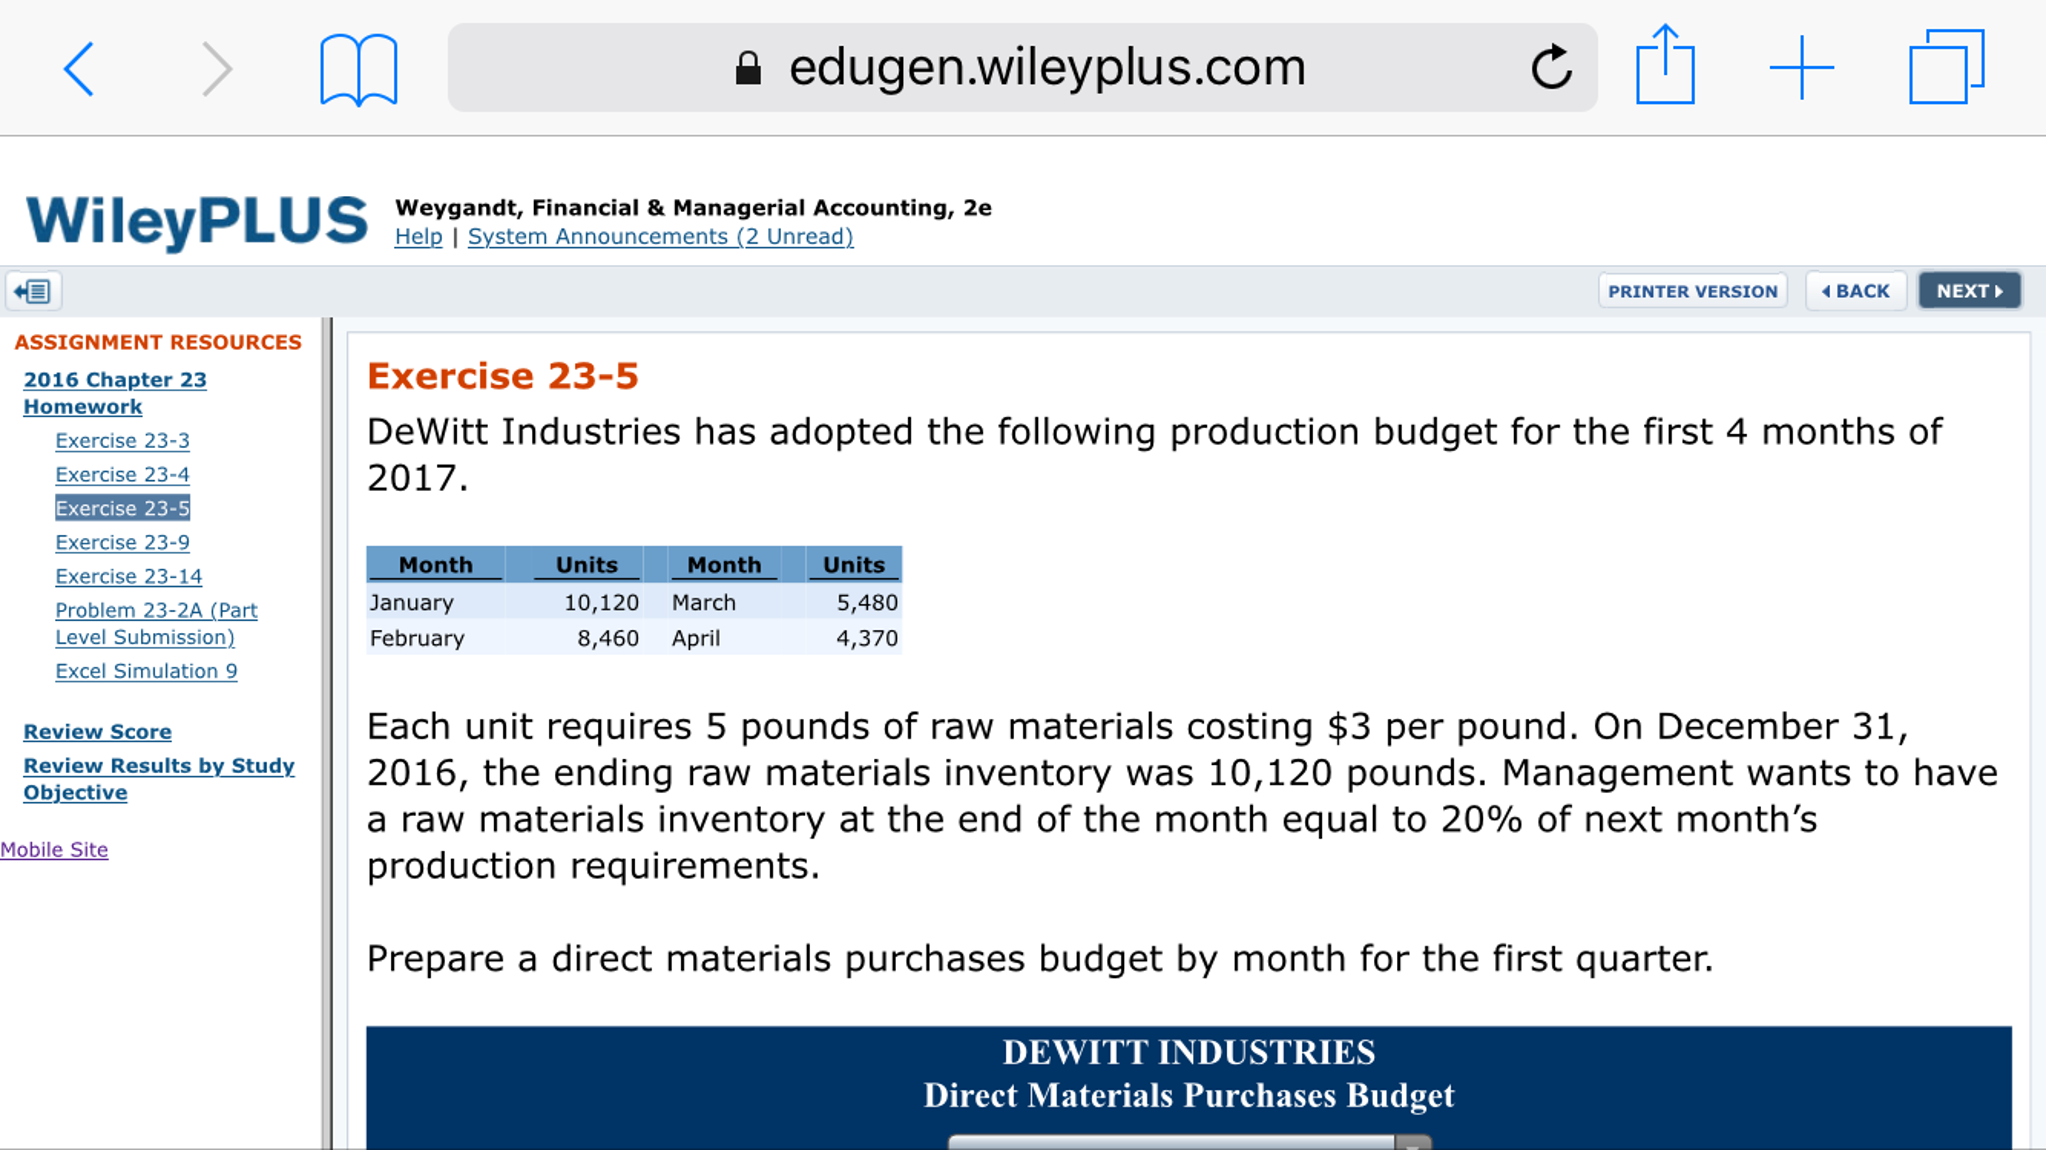 edugen willey plus.com Wiley PLUS Weygandt, Financ